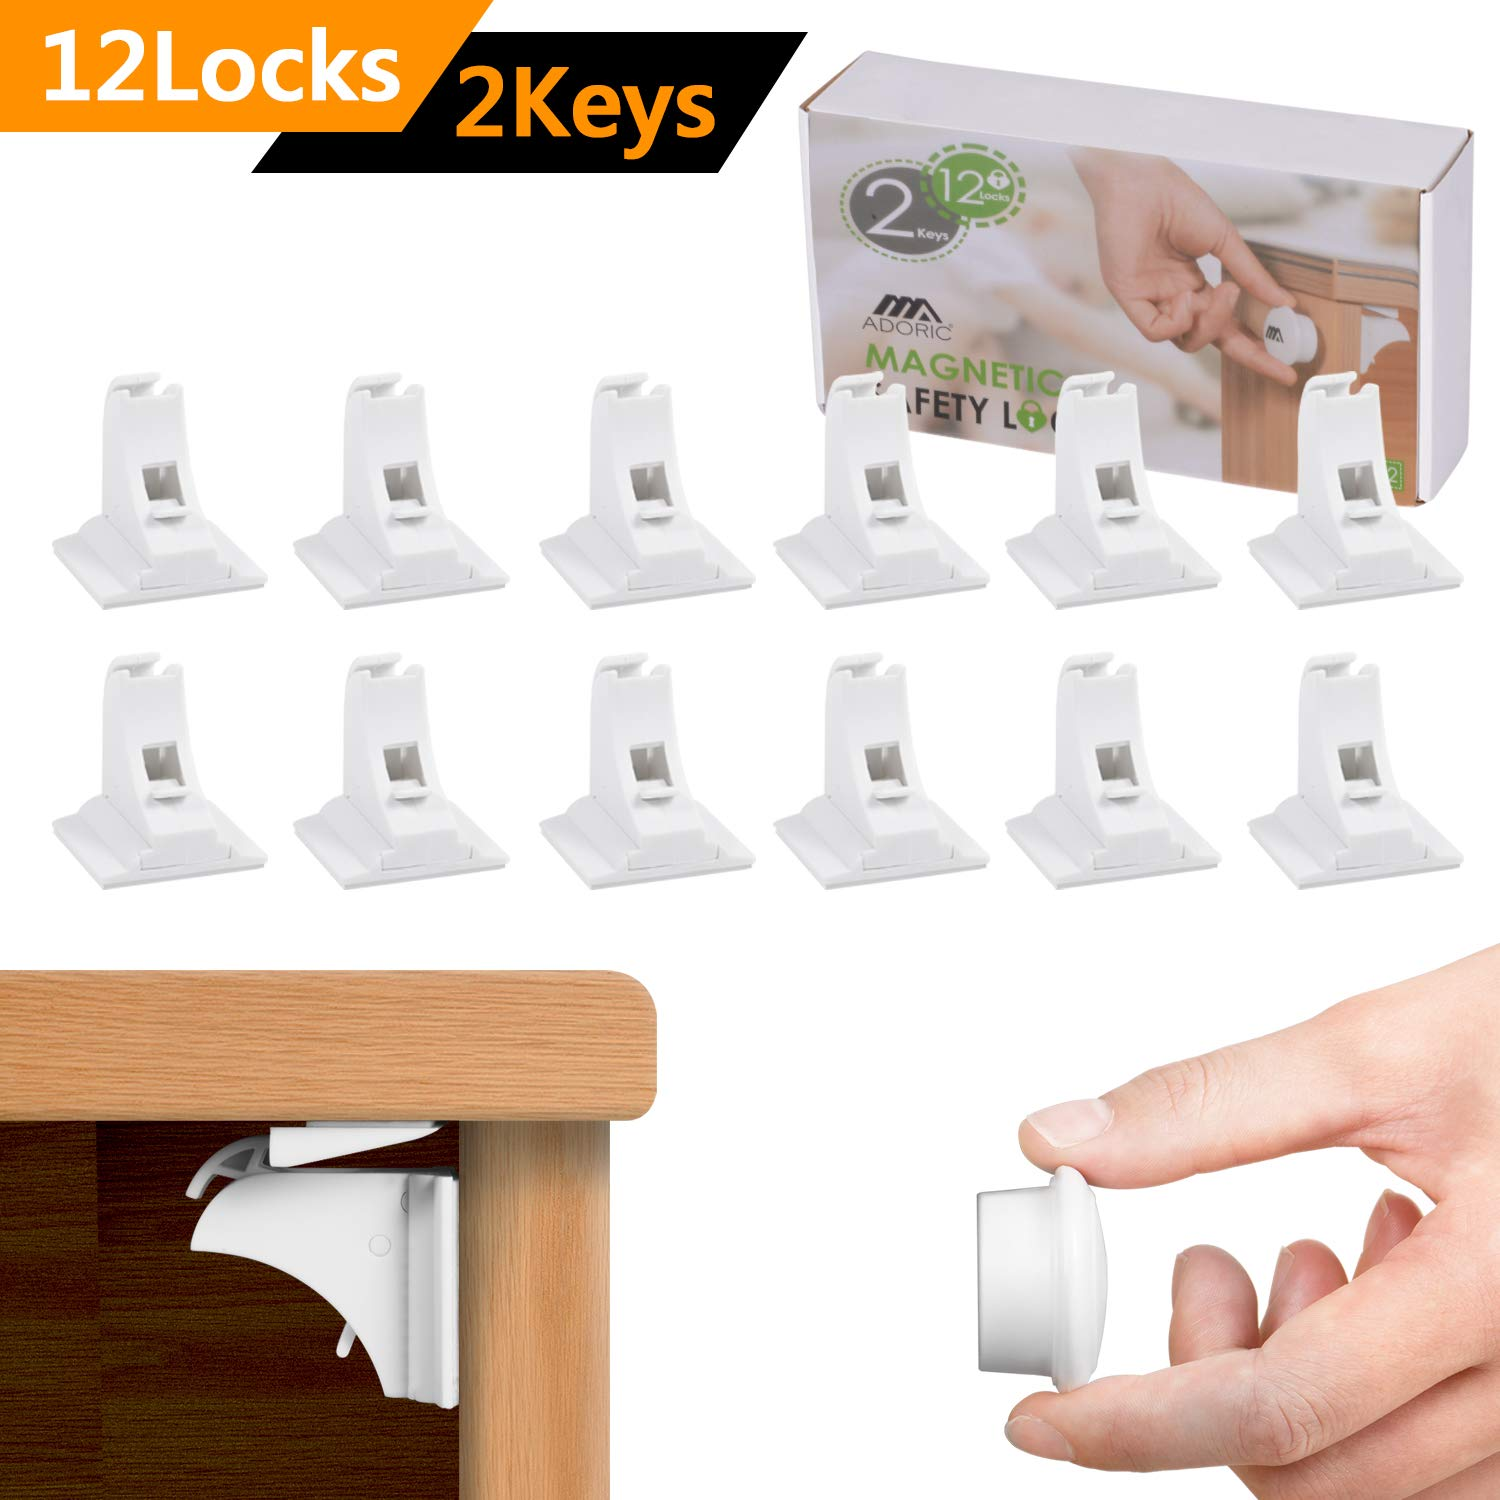 Magnetic Baby Proofing Safety Locks - 12 Locks with 2 Keys - 3M ADHESIVE Cabinet Drawer Baby Safety Cabinet Locks - No Drilling or Screws Needed - White